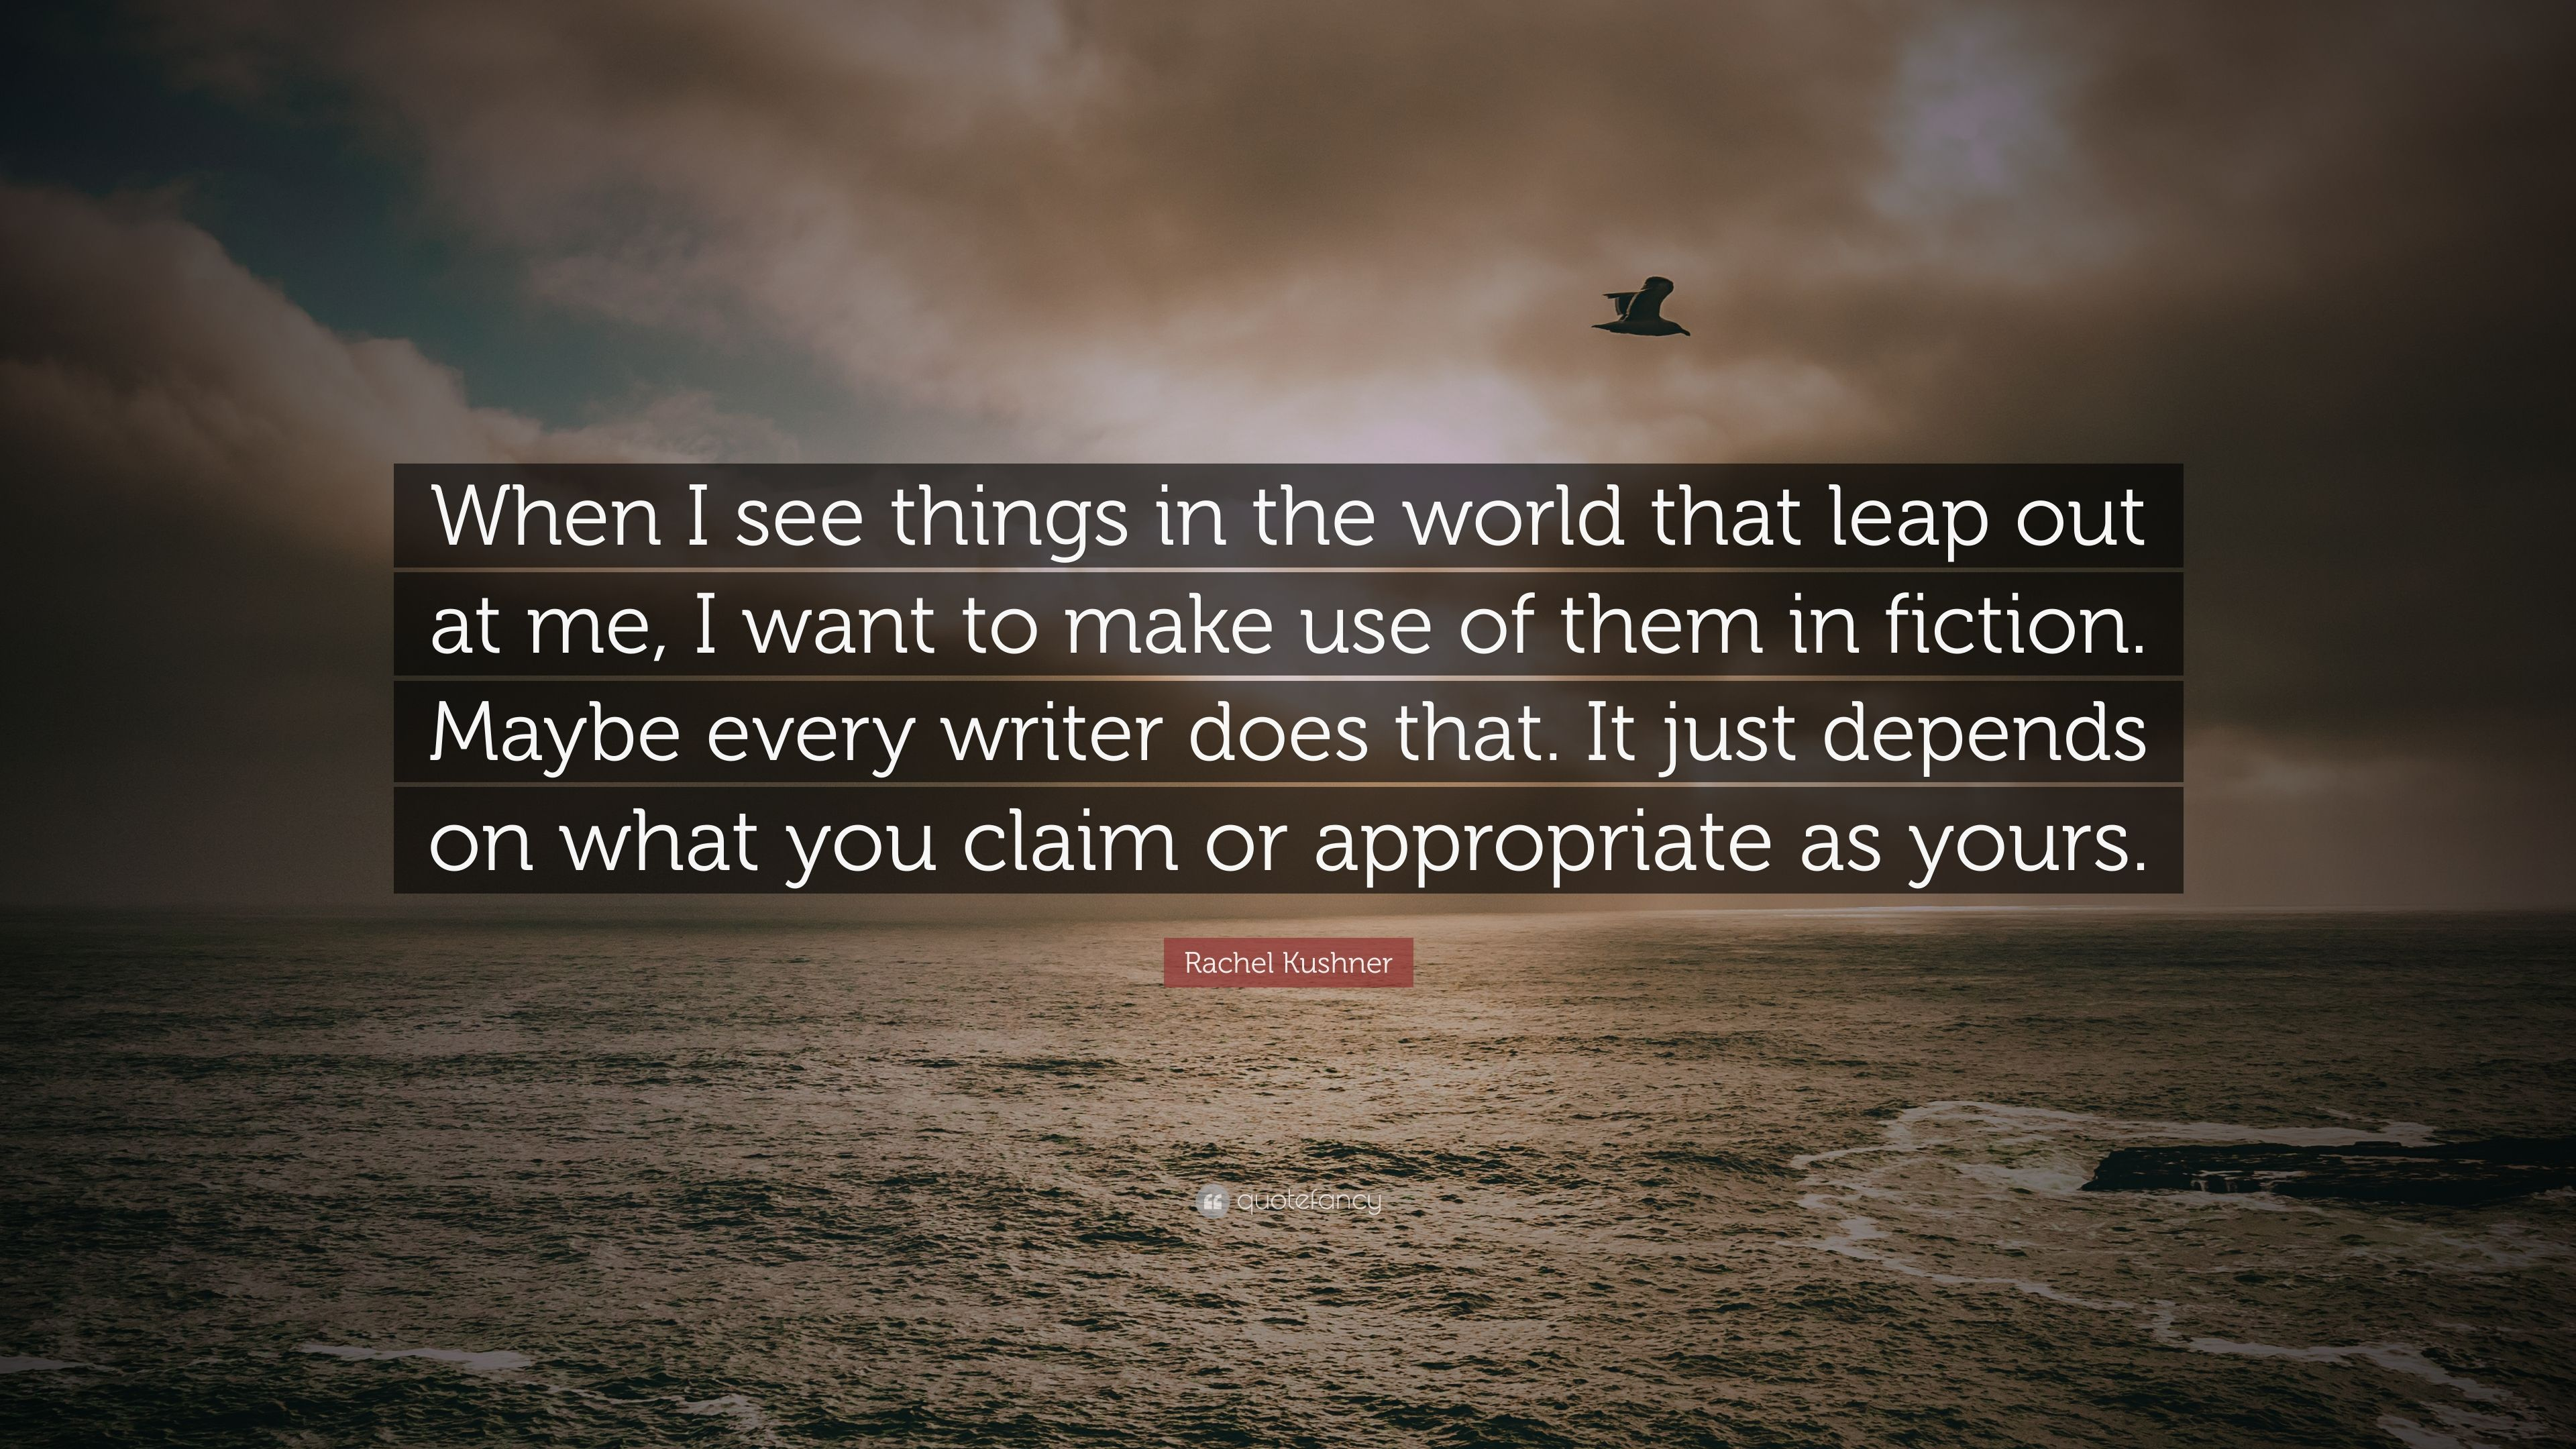 Rachel Kushner Quote When I See Things In The World That Leap Out At Me I Want To Make Use Of Them In Fiction Maybe Every Writer Does That 7 Wallpapers Quotefancy